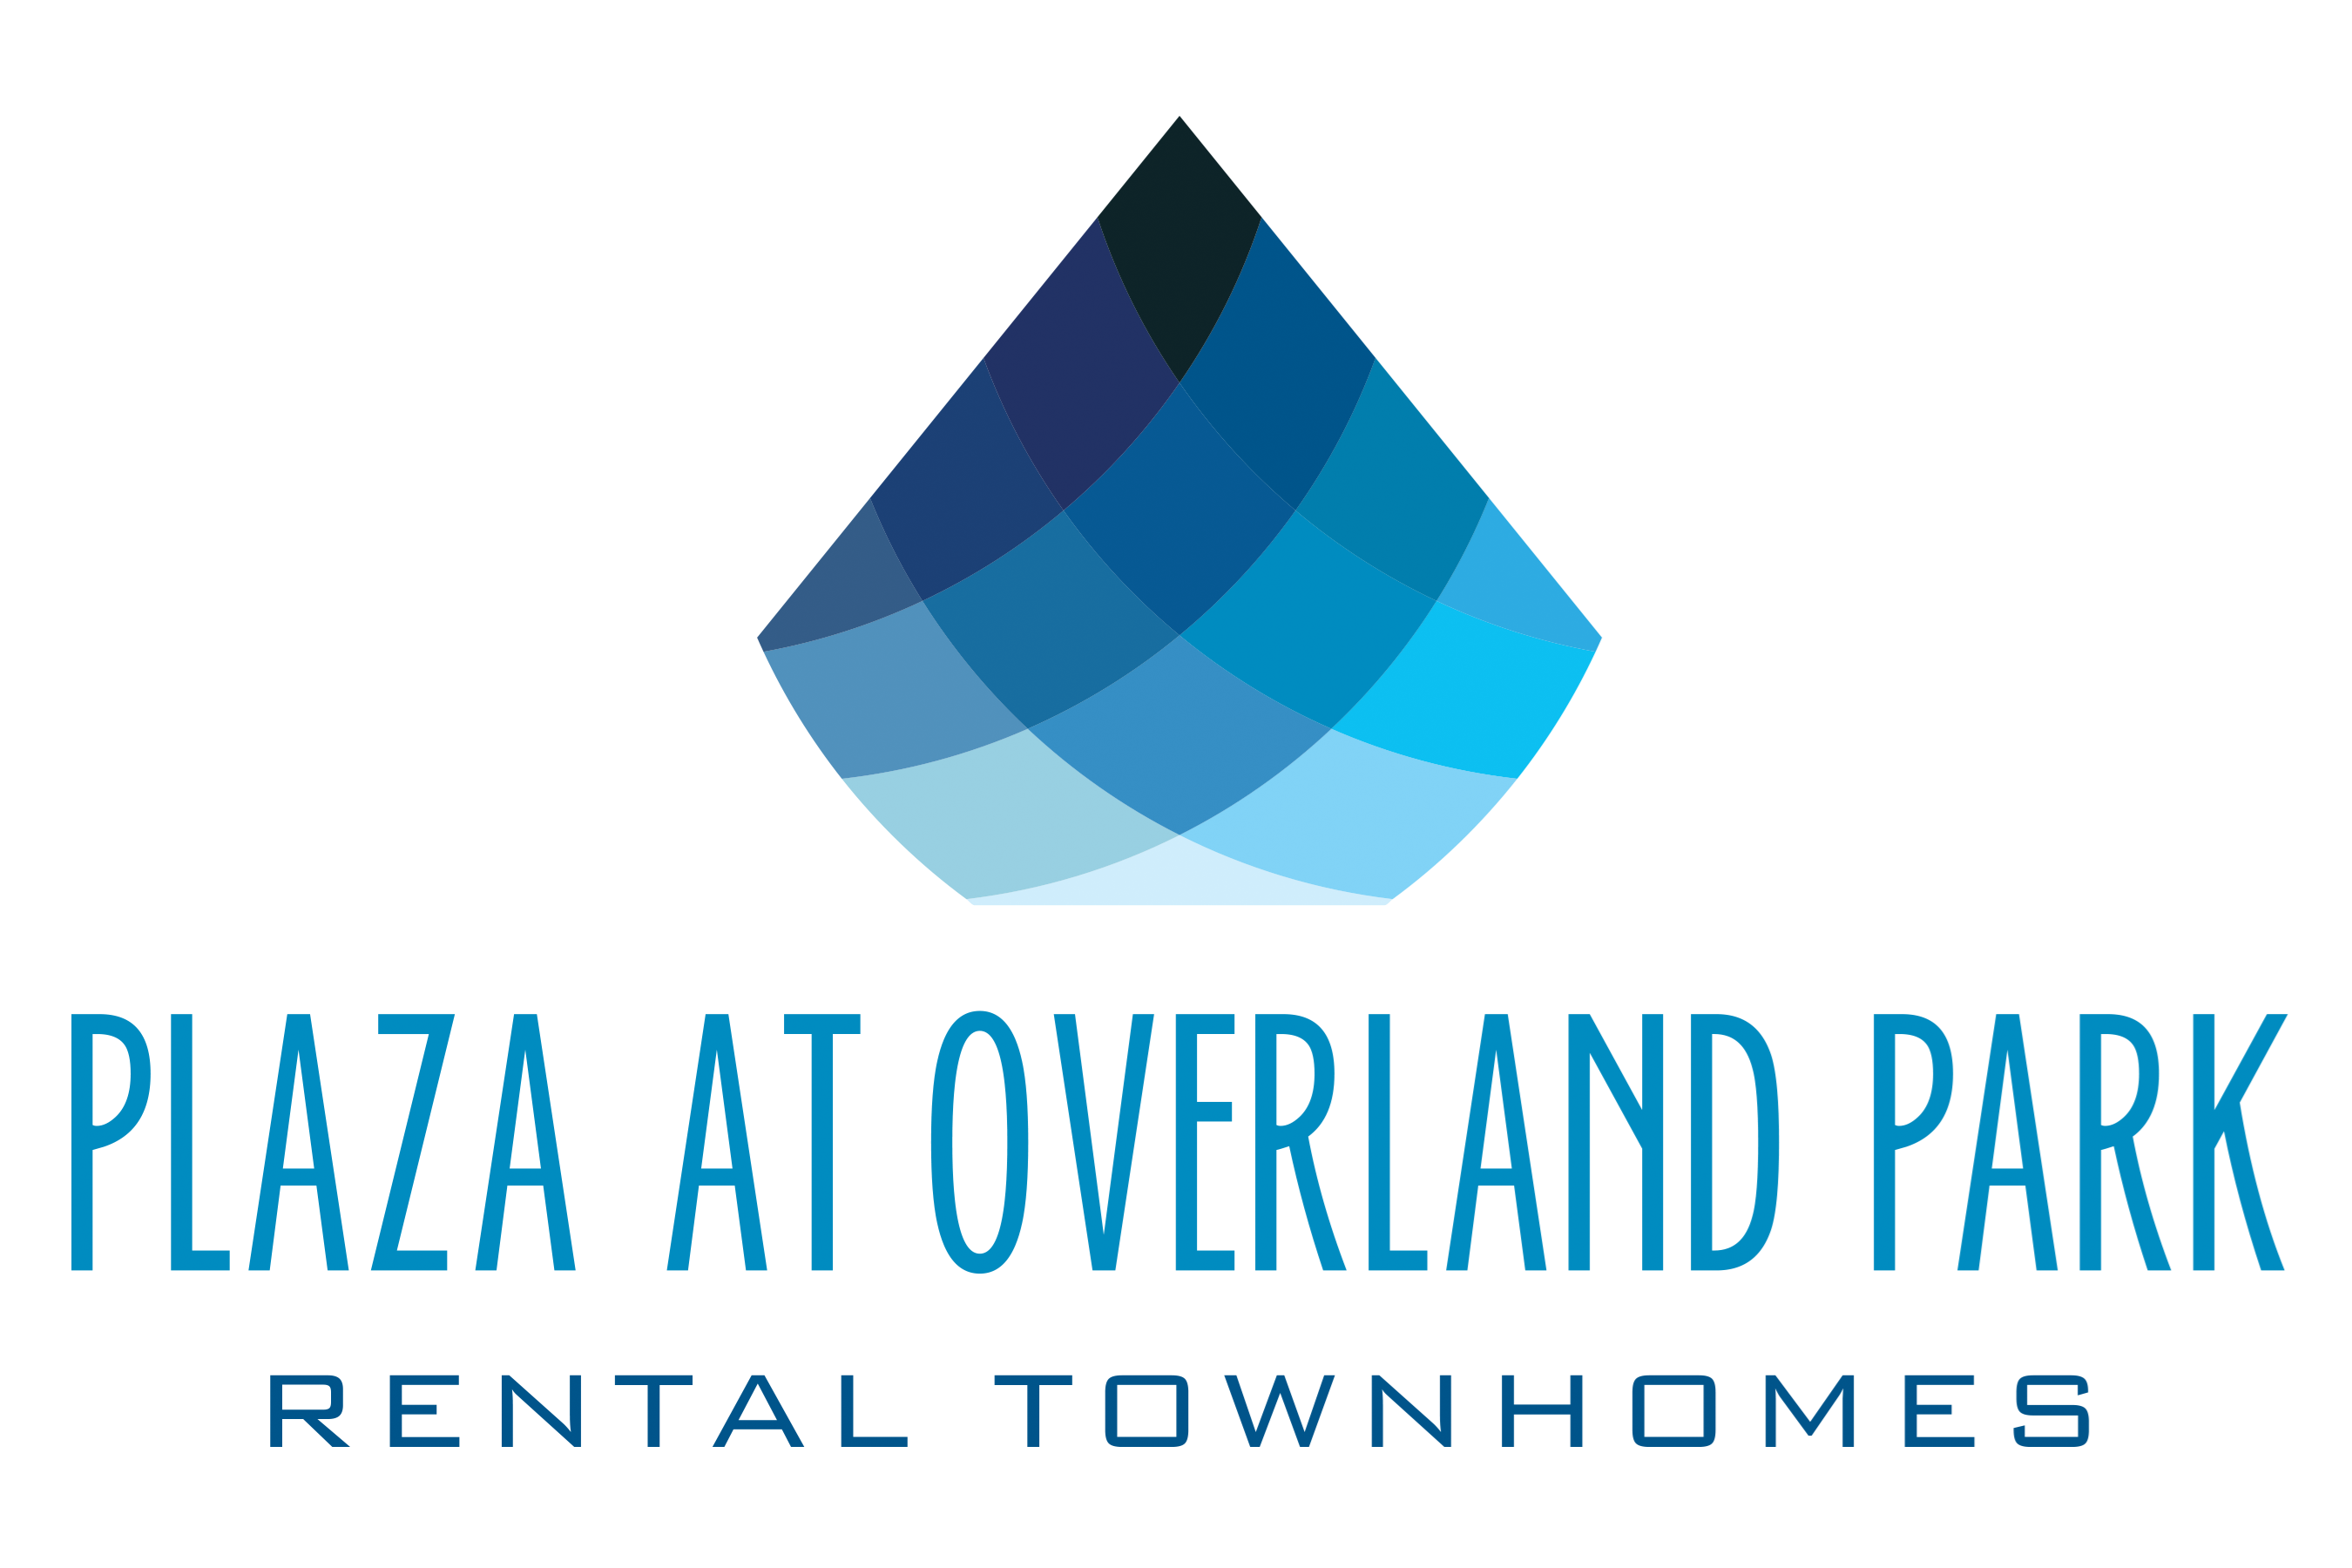 Plaza at Overland Park